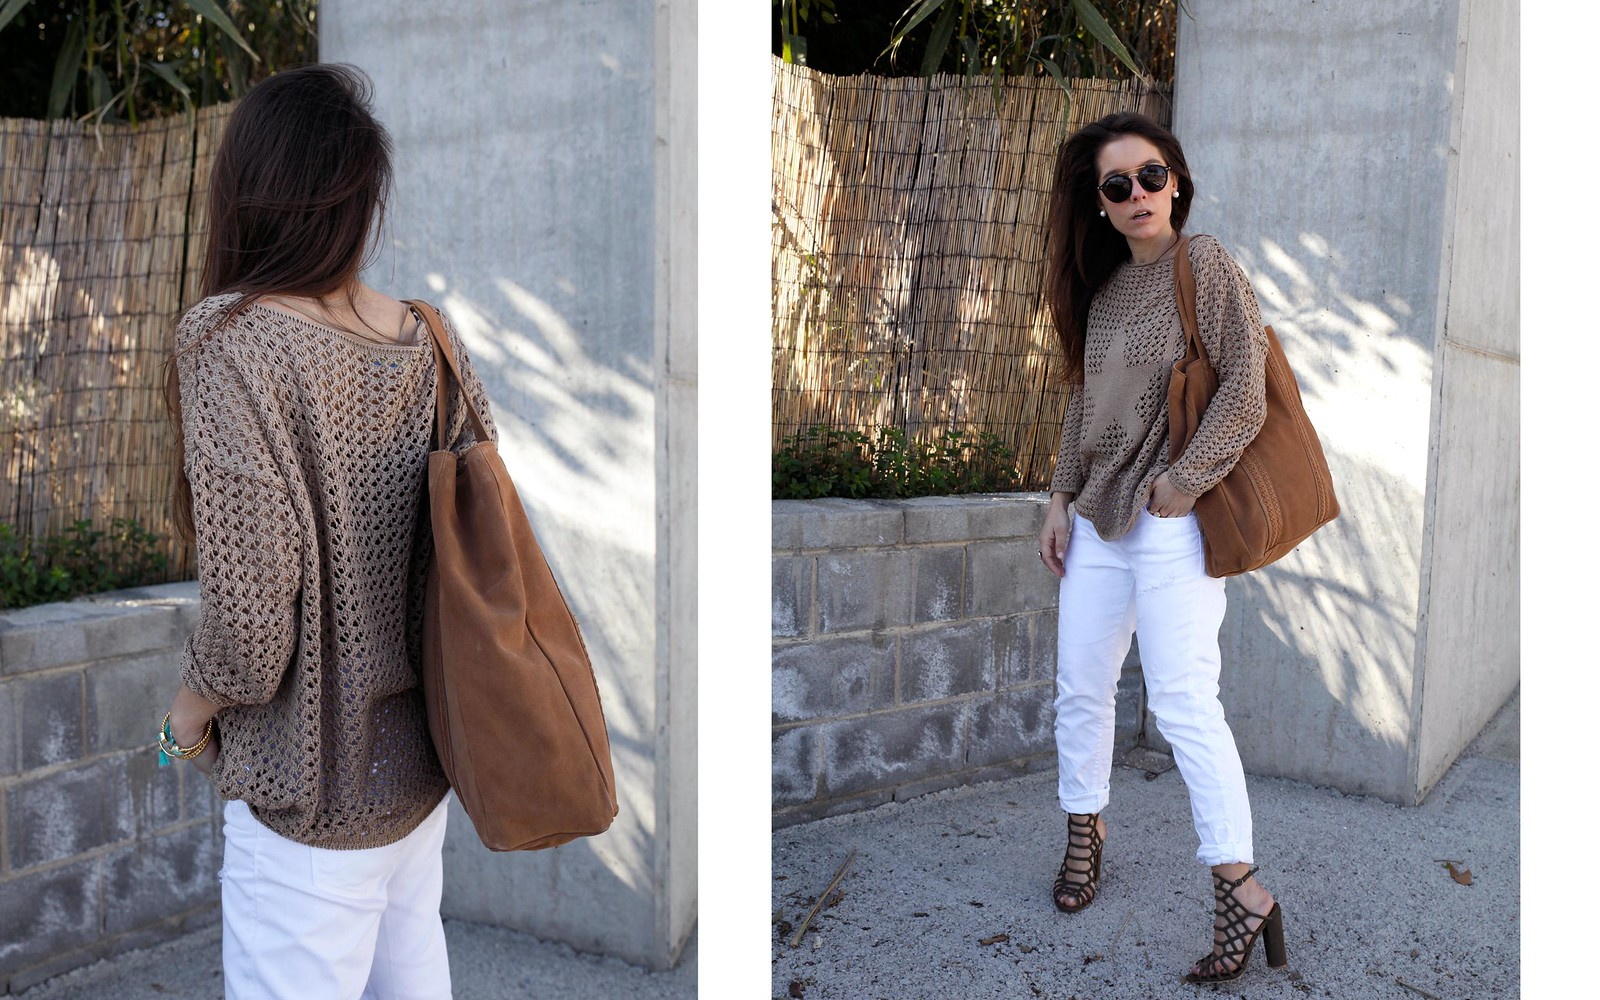 08_SPRING_NEUTRAL_OUTFIT_STREET_STYLE_FASHION_BLOGGER_INFLUENCER_BARCELONA_THEGUESTGIRL